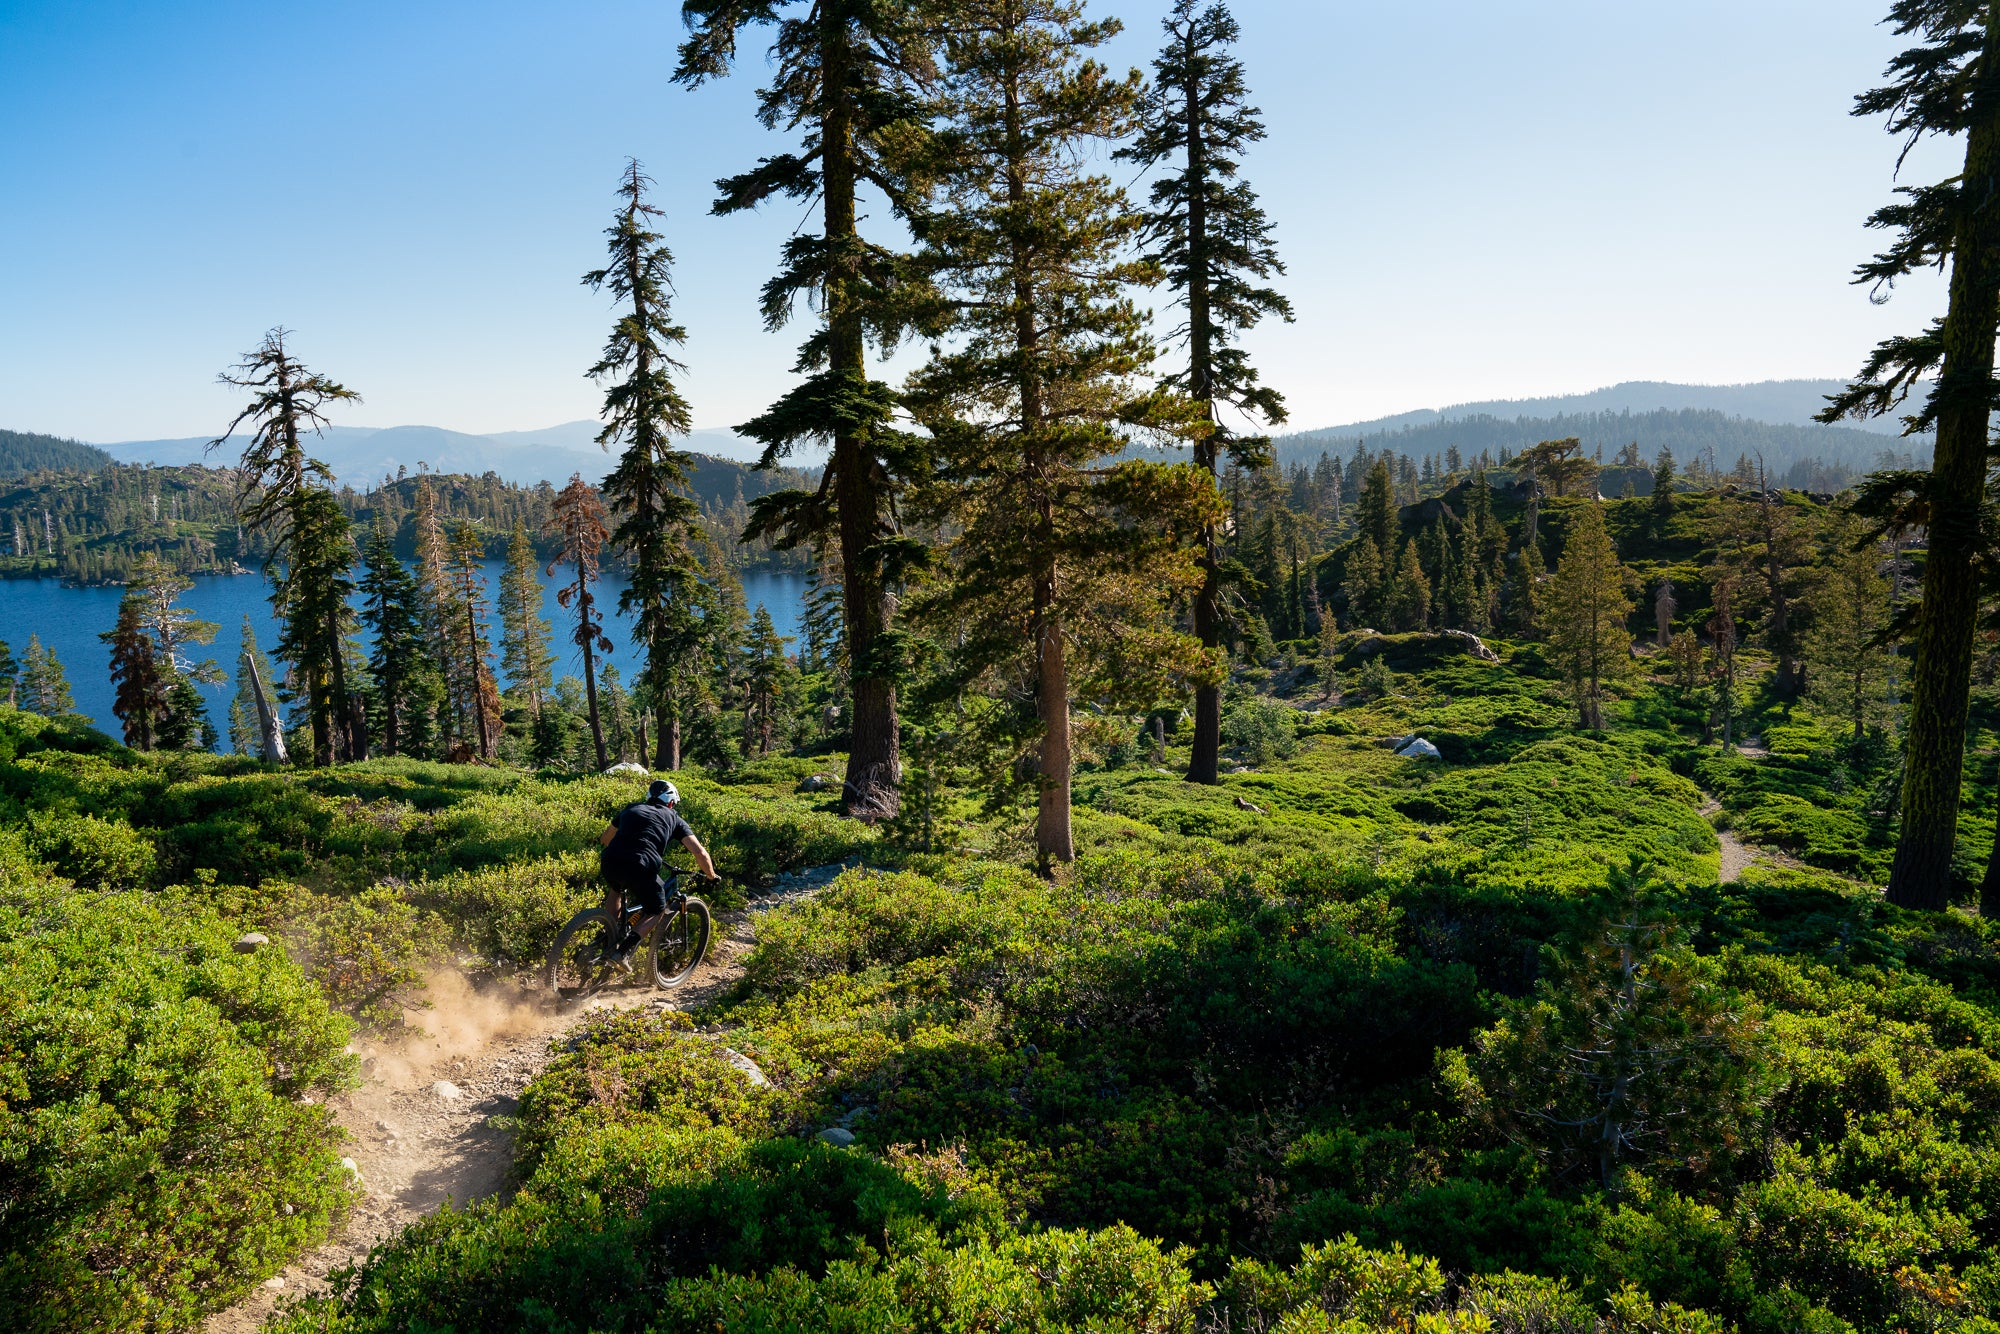 Mountain Biker in the Sierra Nevada Mountains with Lake in the Background